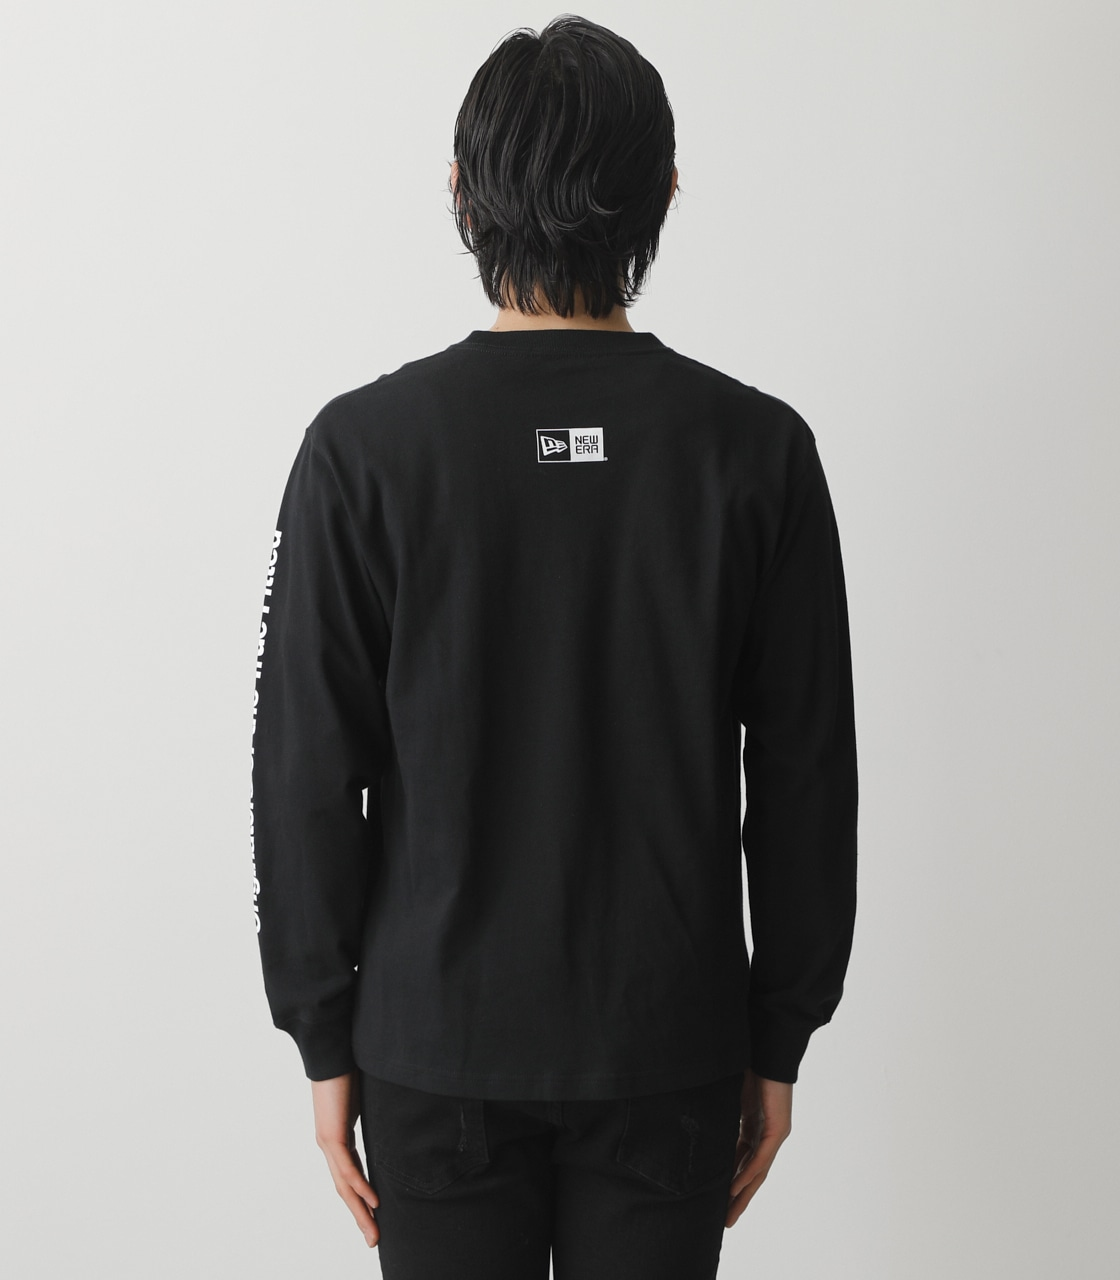 NEW ERA×AZUL LONG T-SHIRTS/NEW ERA×AZULロングTシャツ 詳細画像 BLK 7